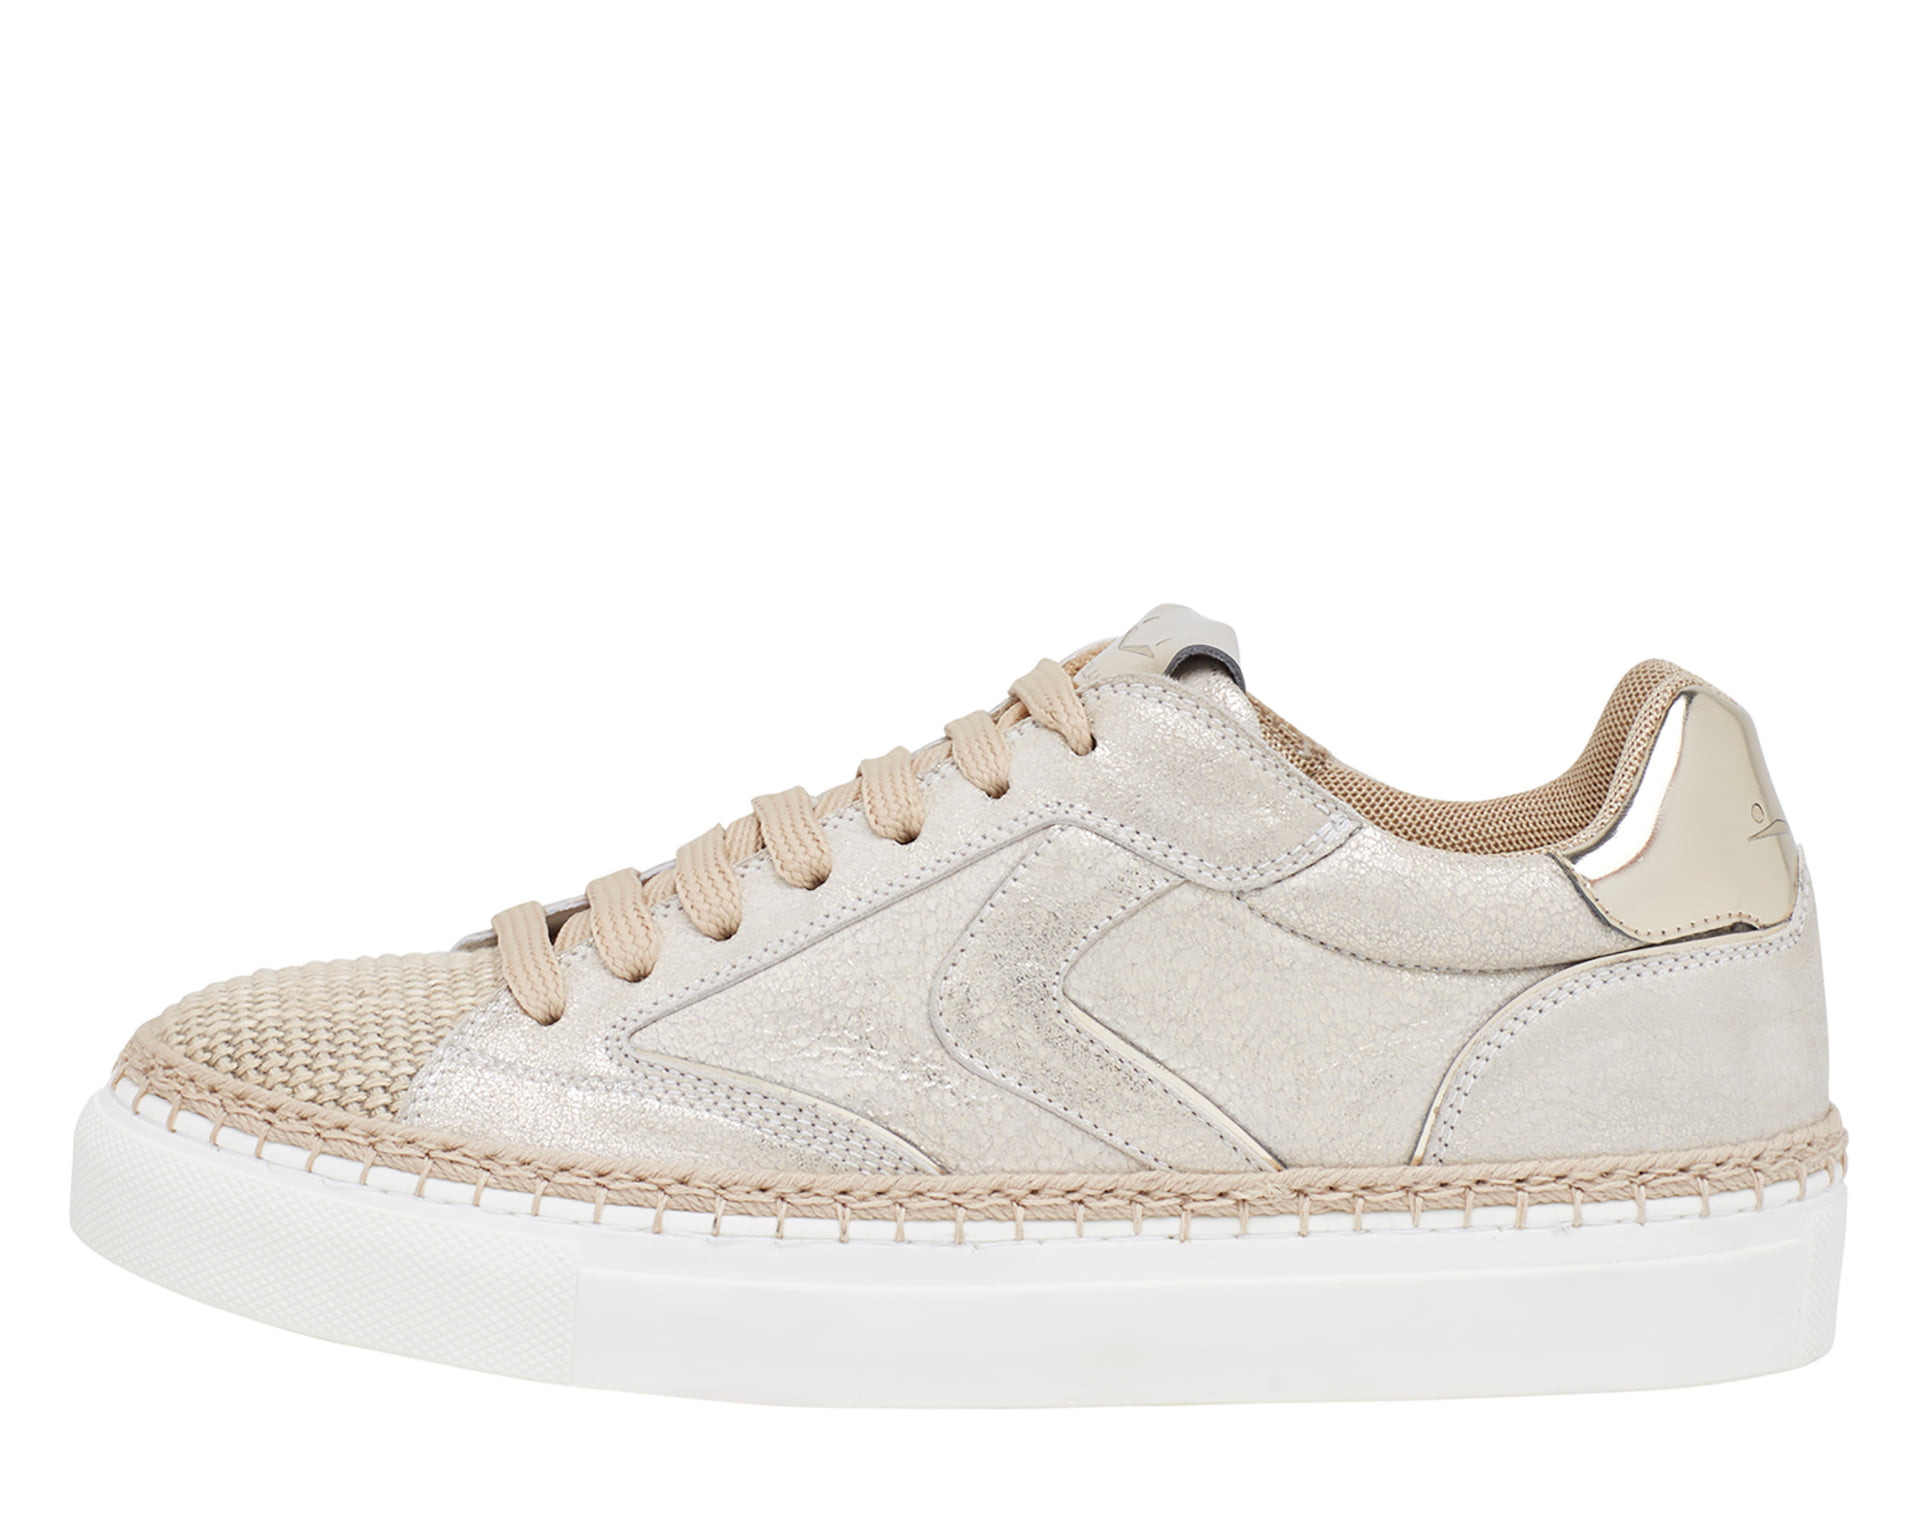 NEW TROPEA - Leather and rope sneakers - Platinum